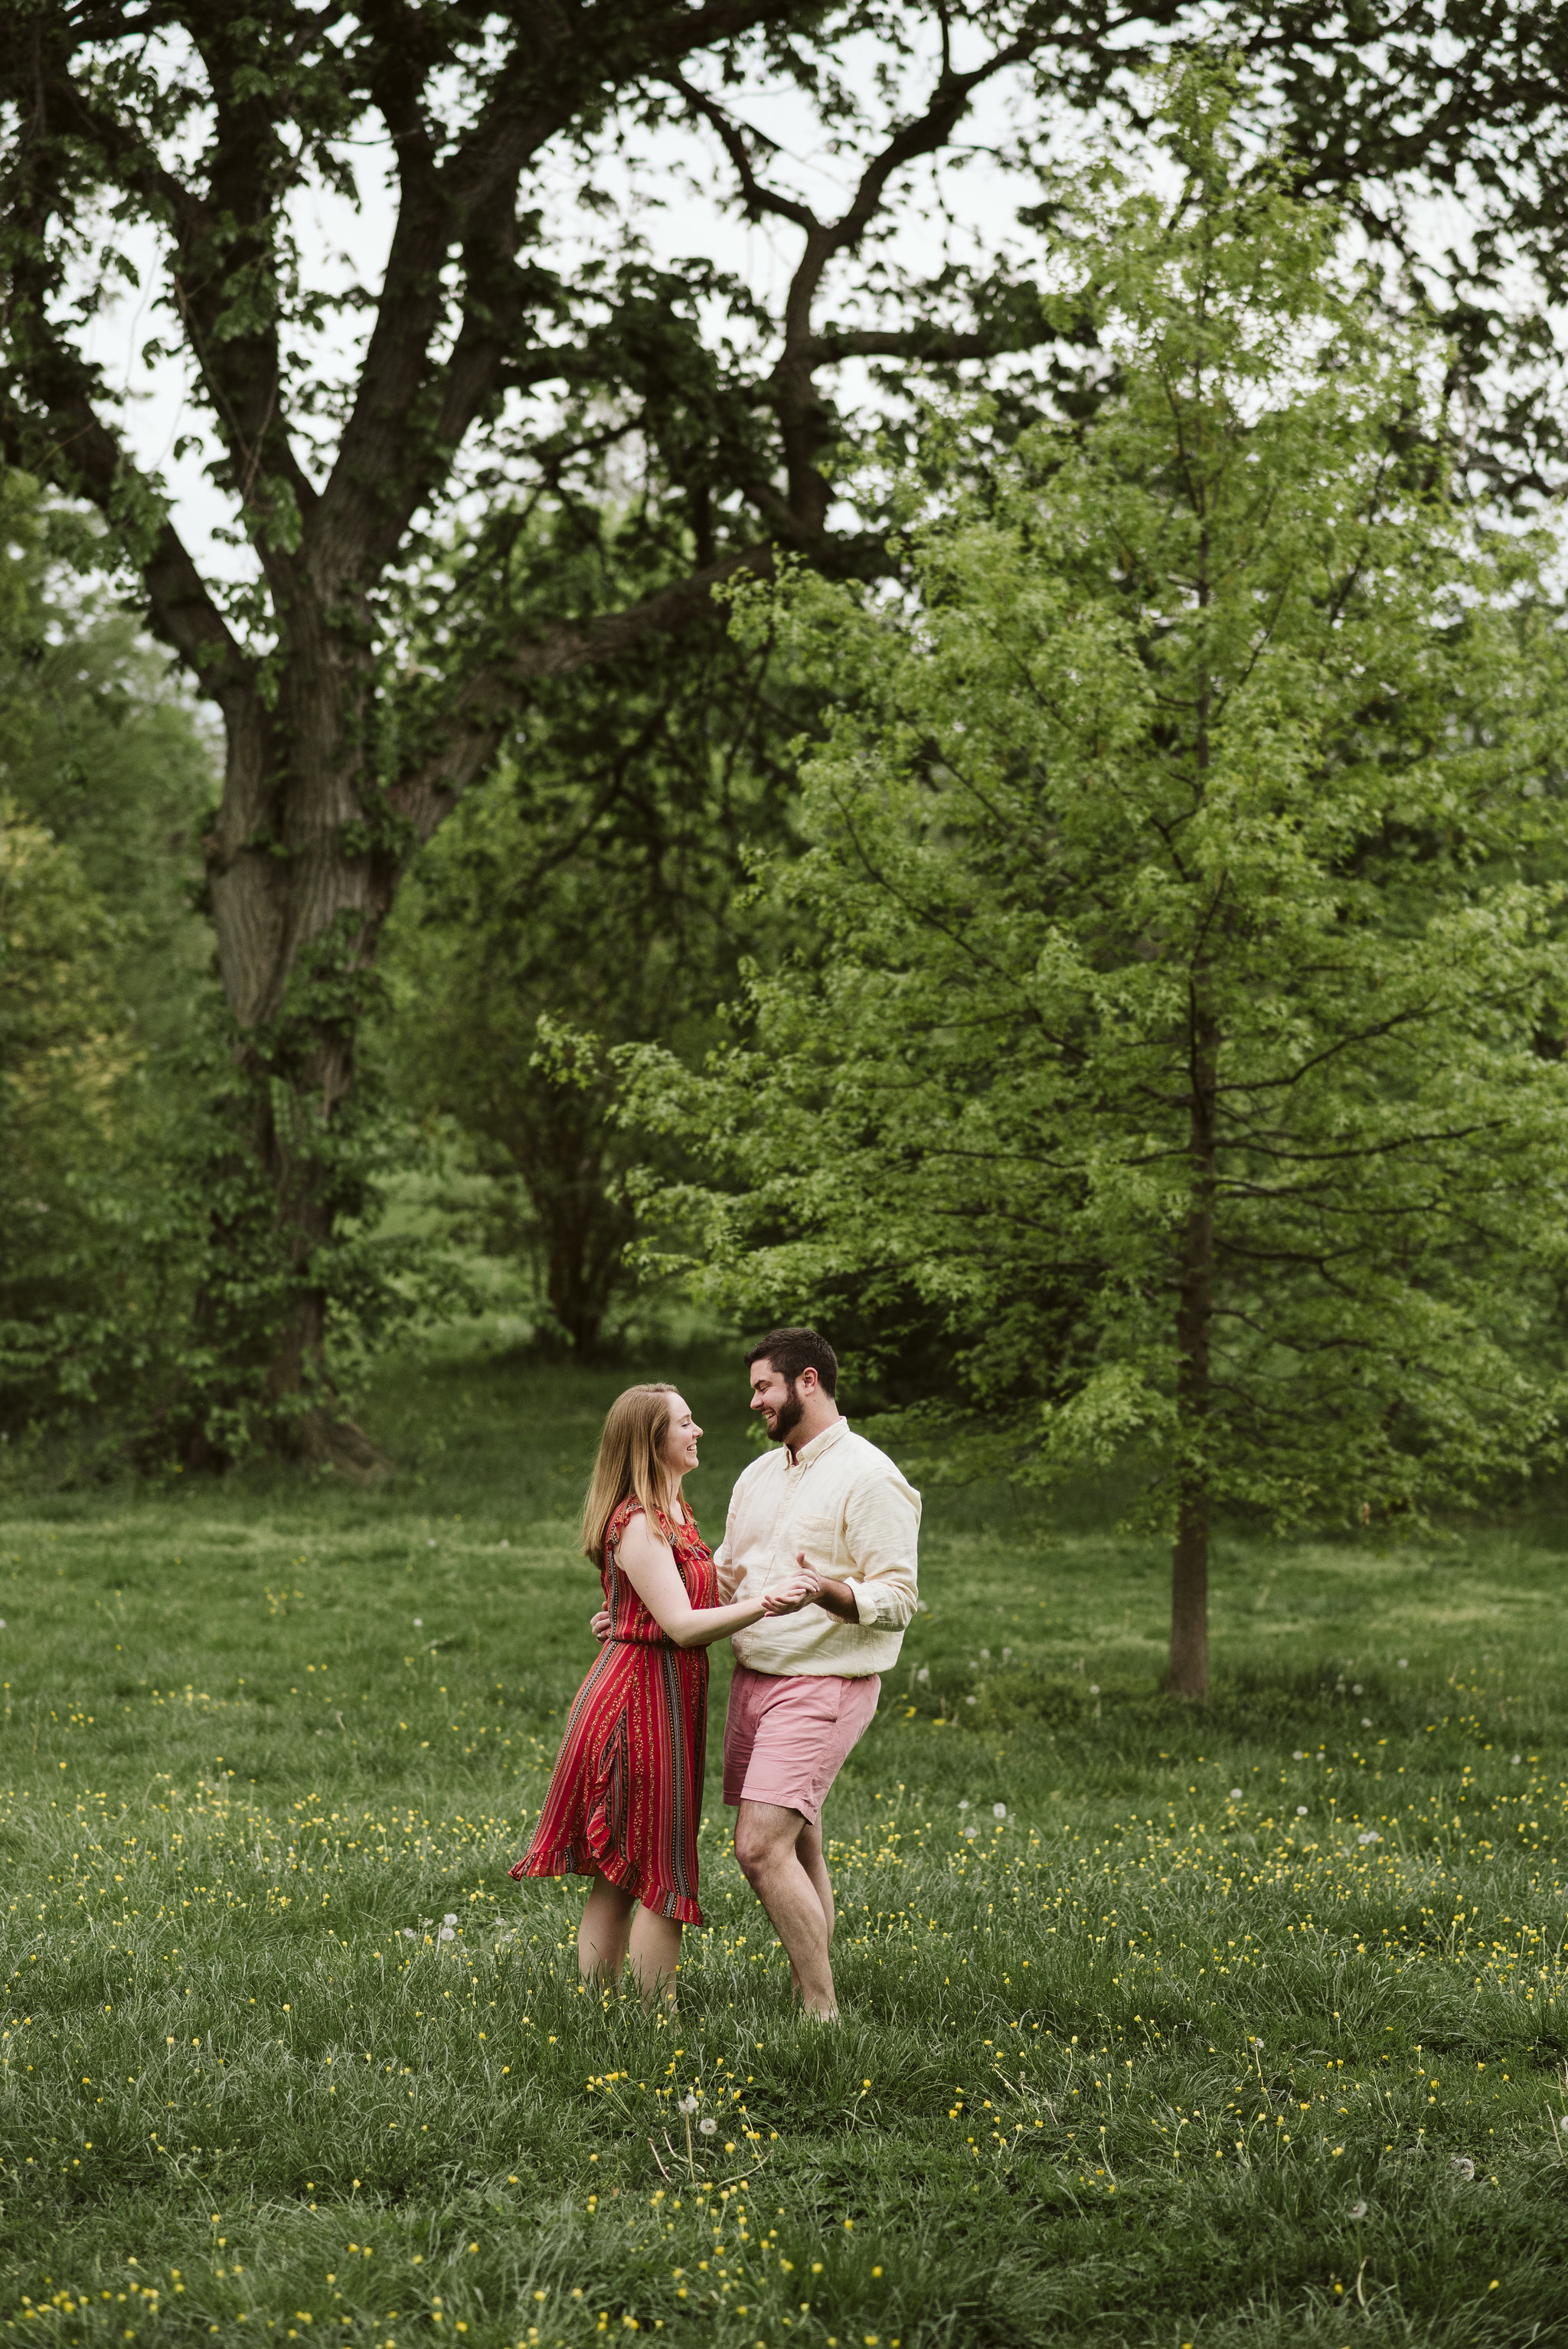 Engagement Photos, Patterson Park, Baltimore, Maryland Wedding Photographer, Casual, Fun, Nature, Bride and Groom Dancing in a Field of Buttercup Flowers